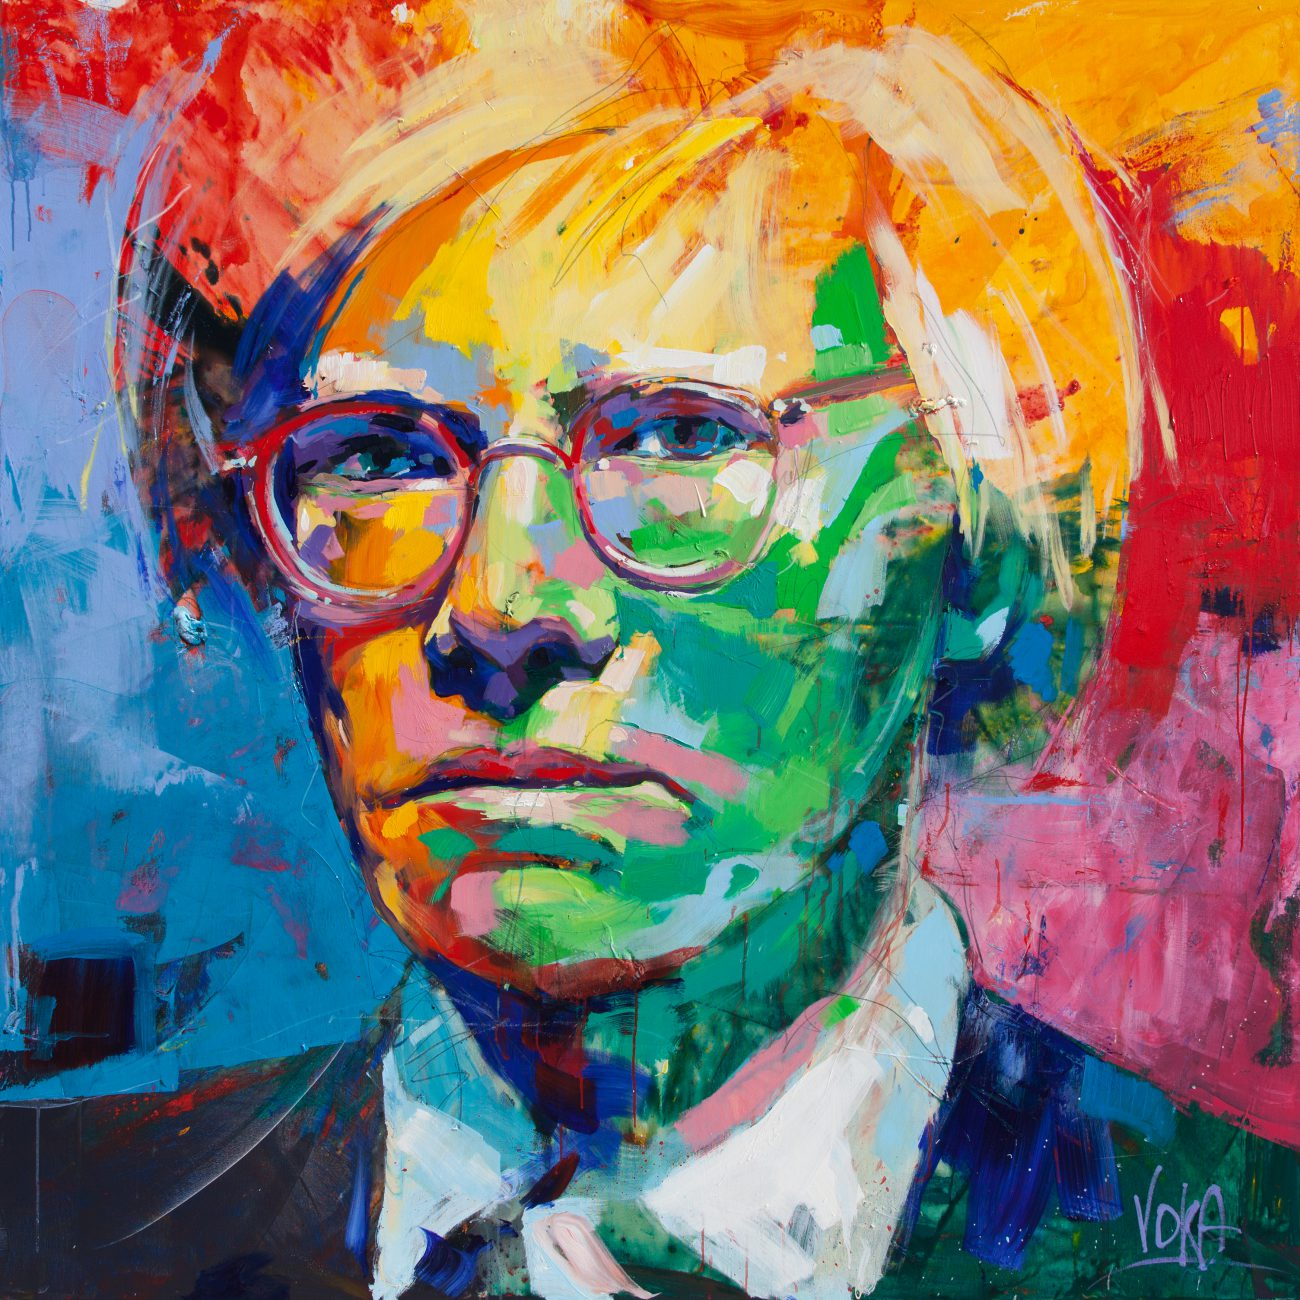 Andy Warhol, Voka, Art On Screen - NEWS - [AOS] Magazine